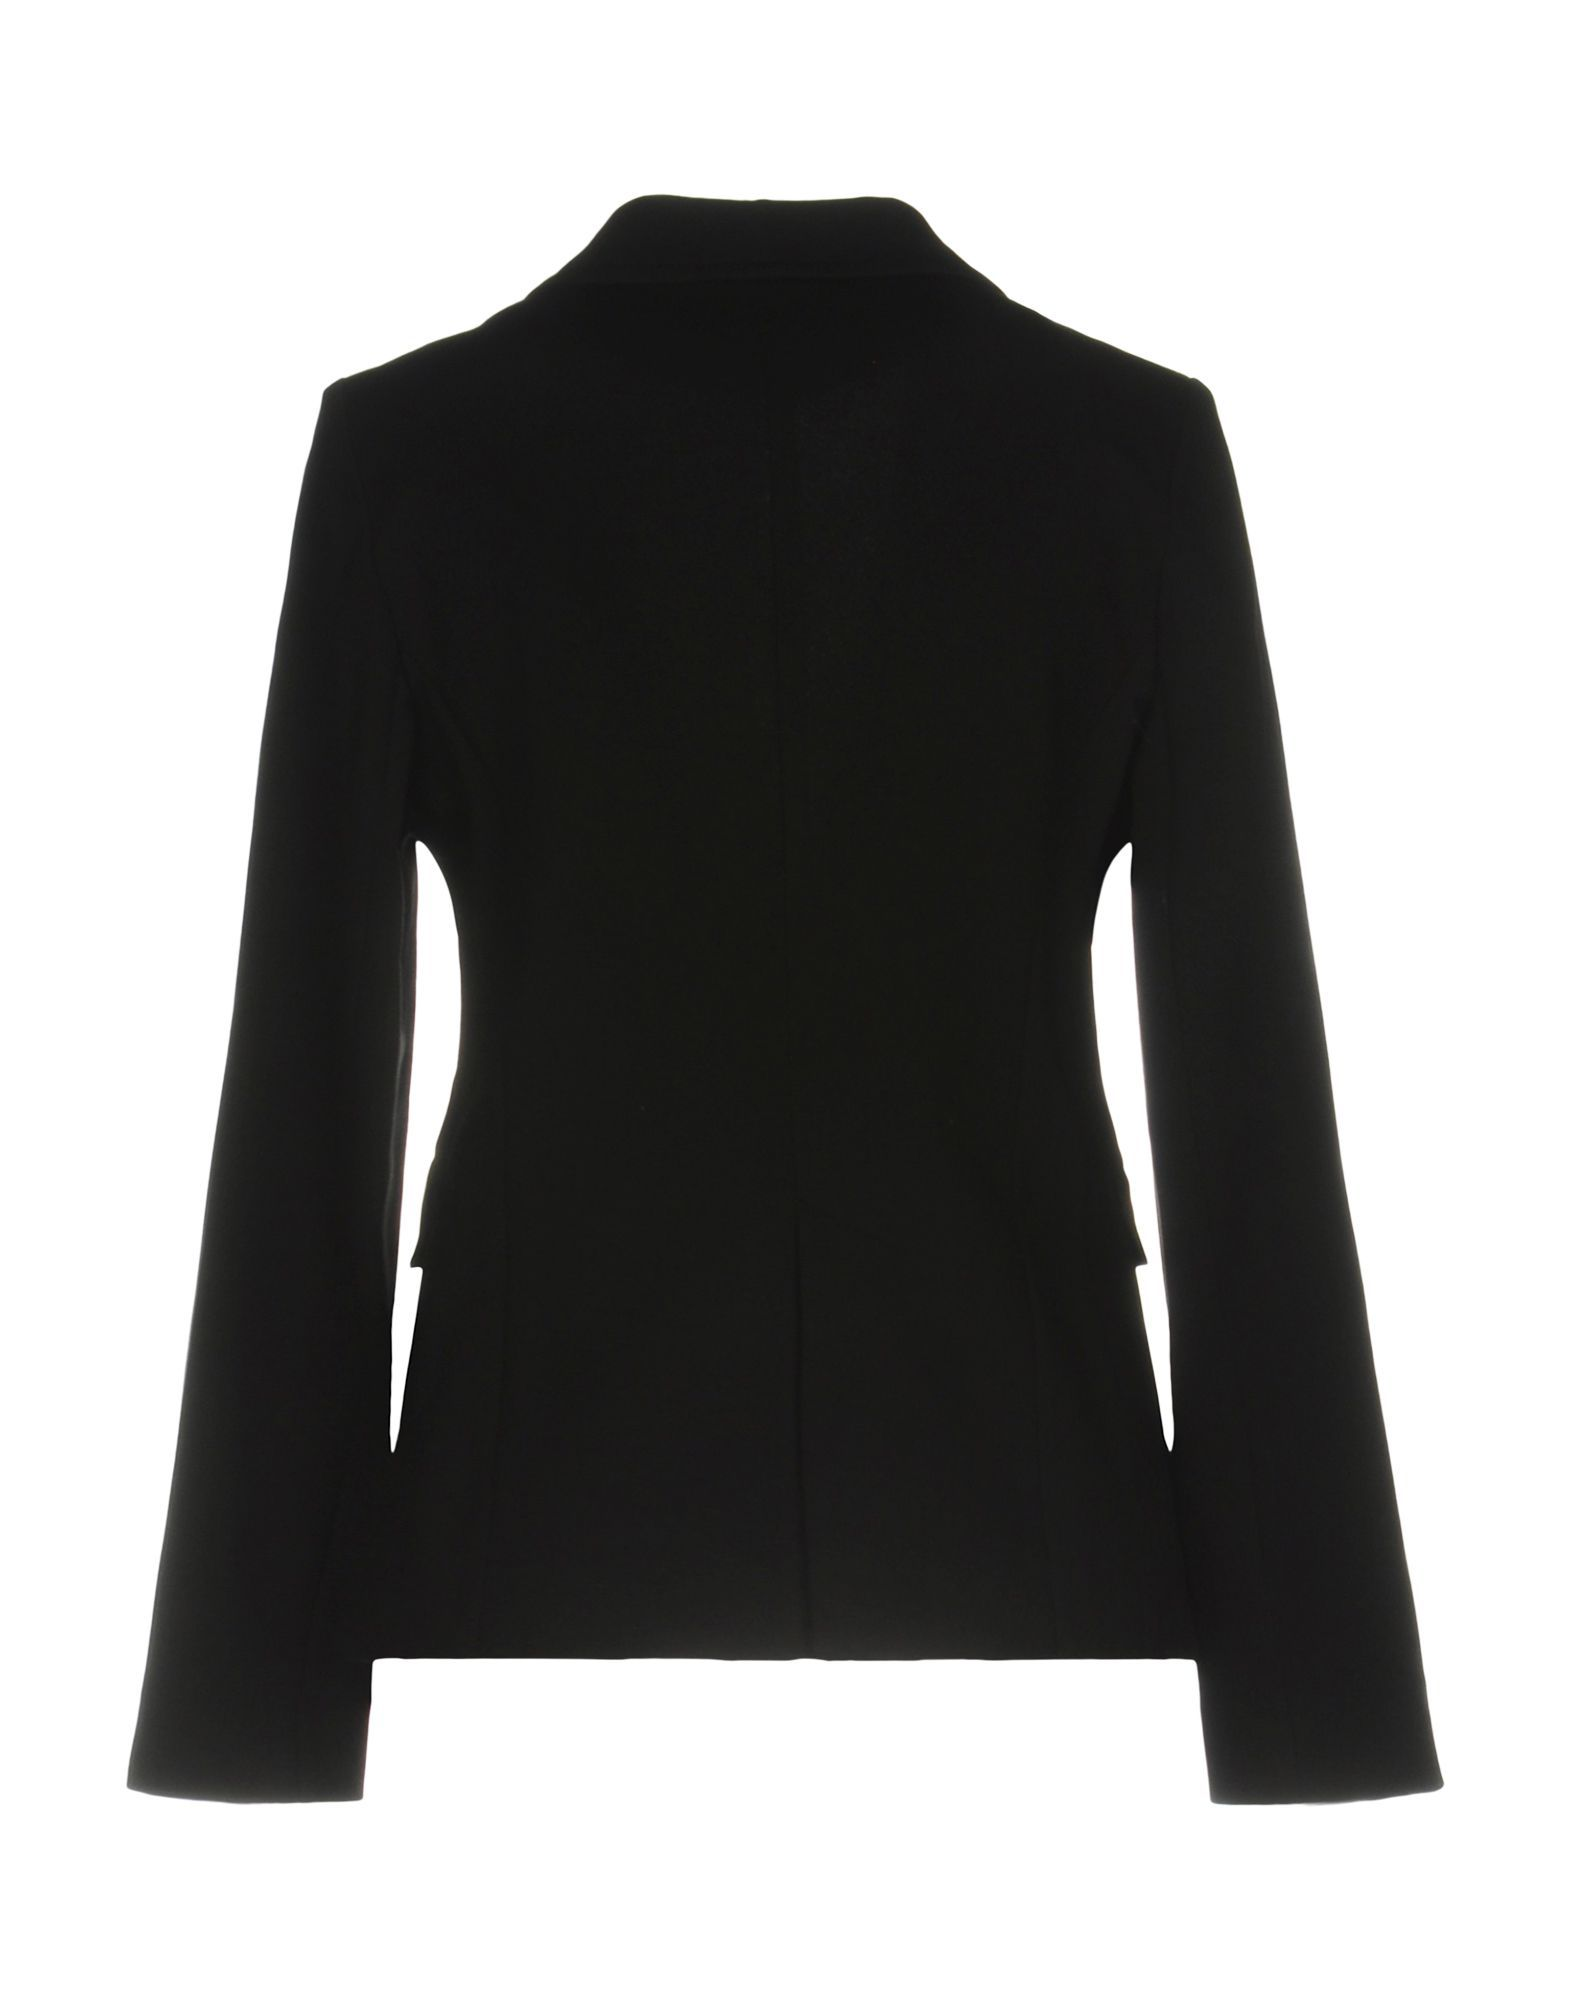 SUITS AND JACKETS Jucca Black Woman Viscose